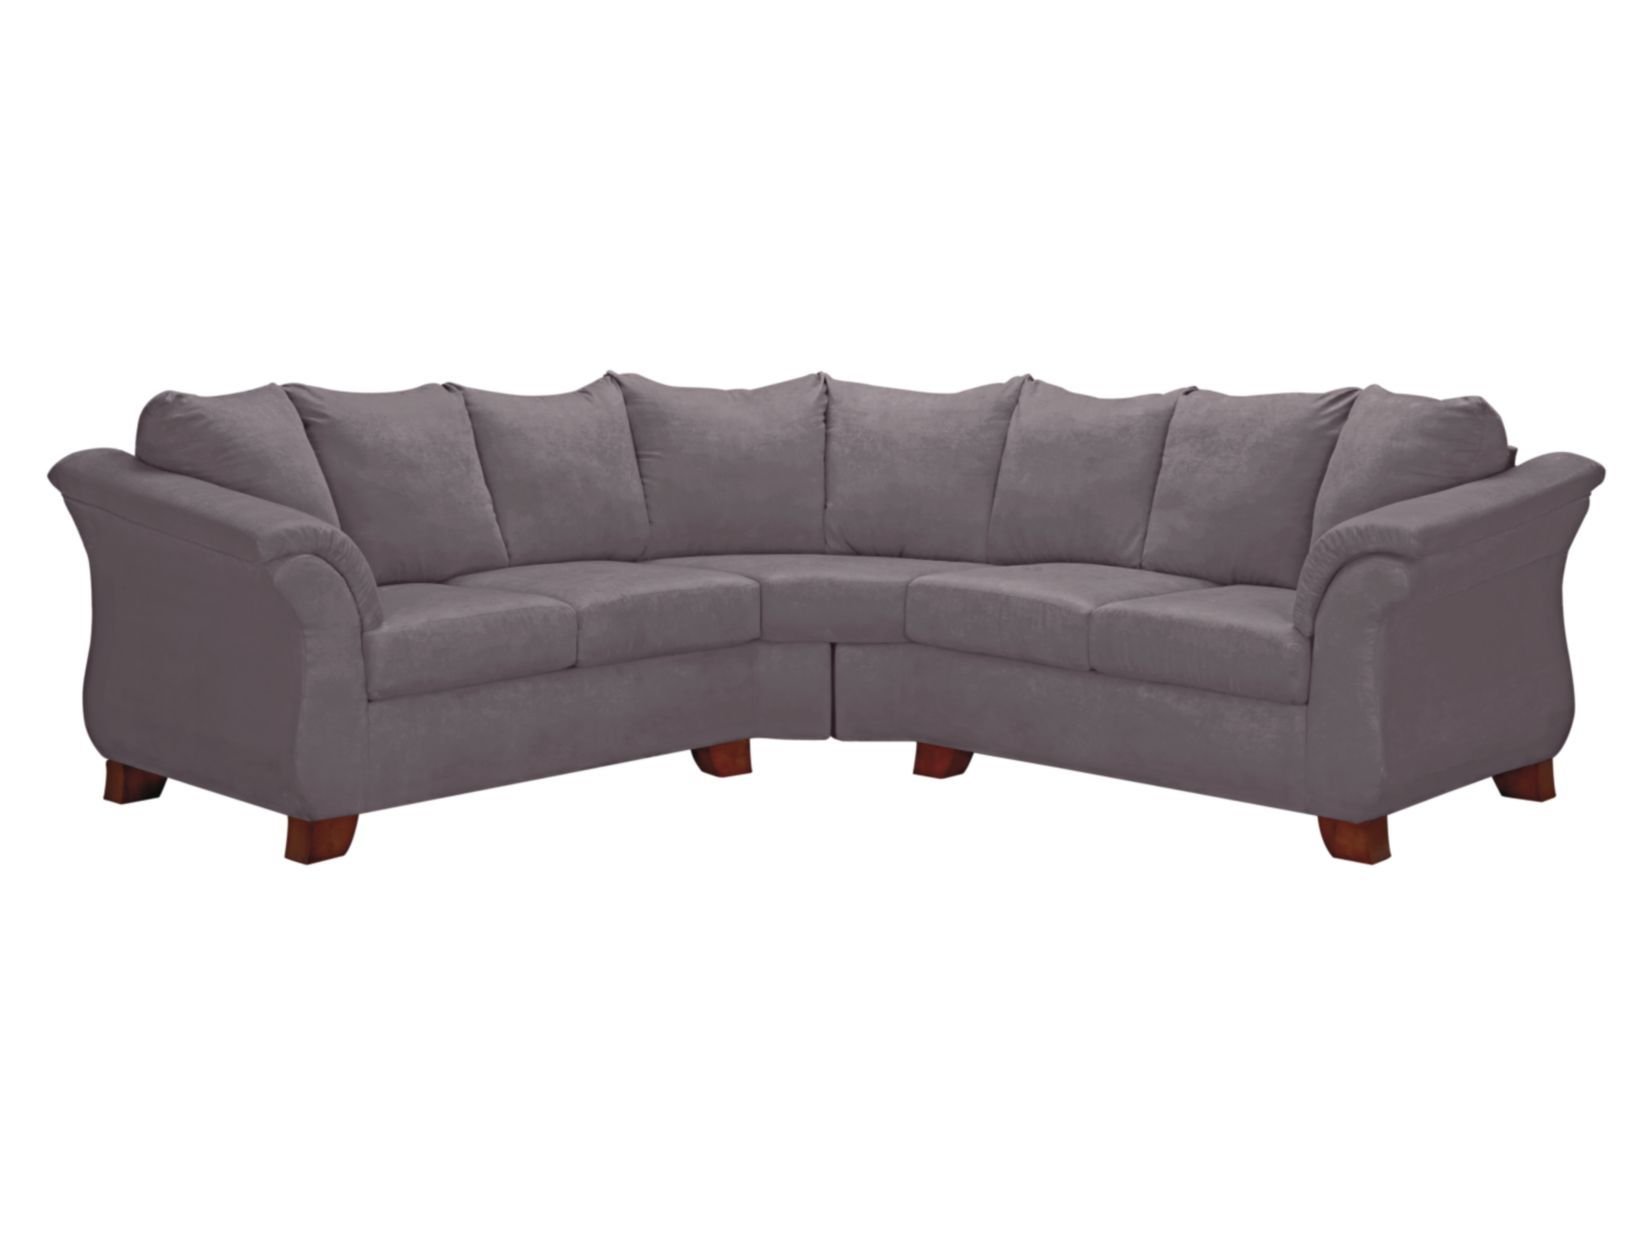 2-PC Sectional - Value City Furniture - Living Room?   Home decor ...